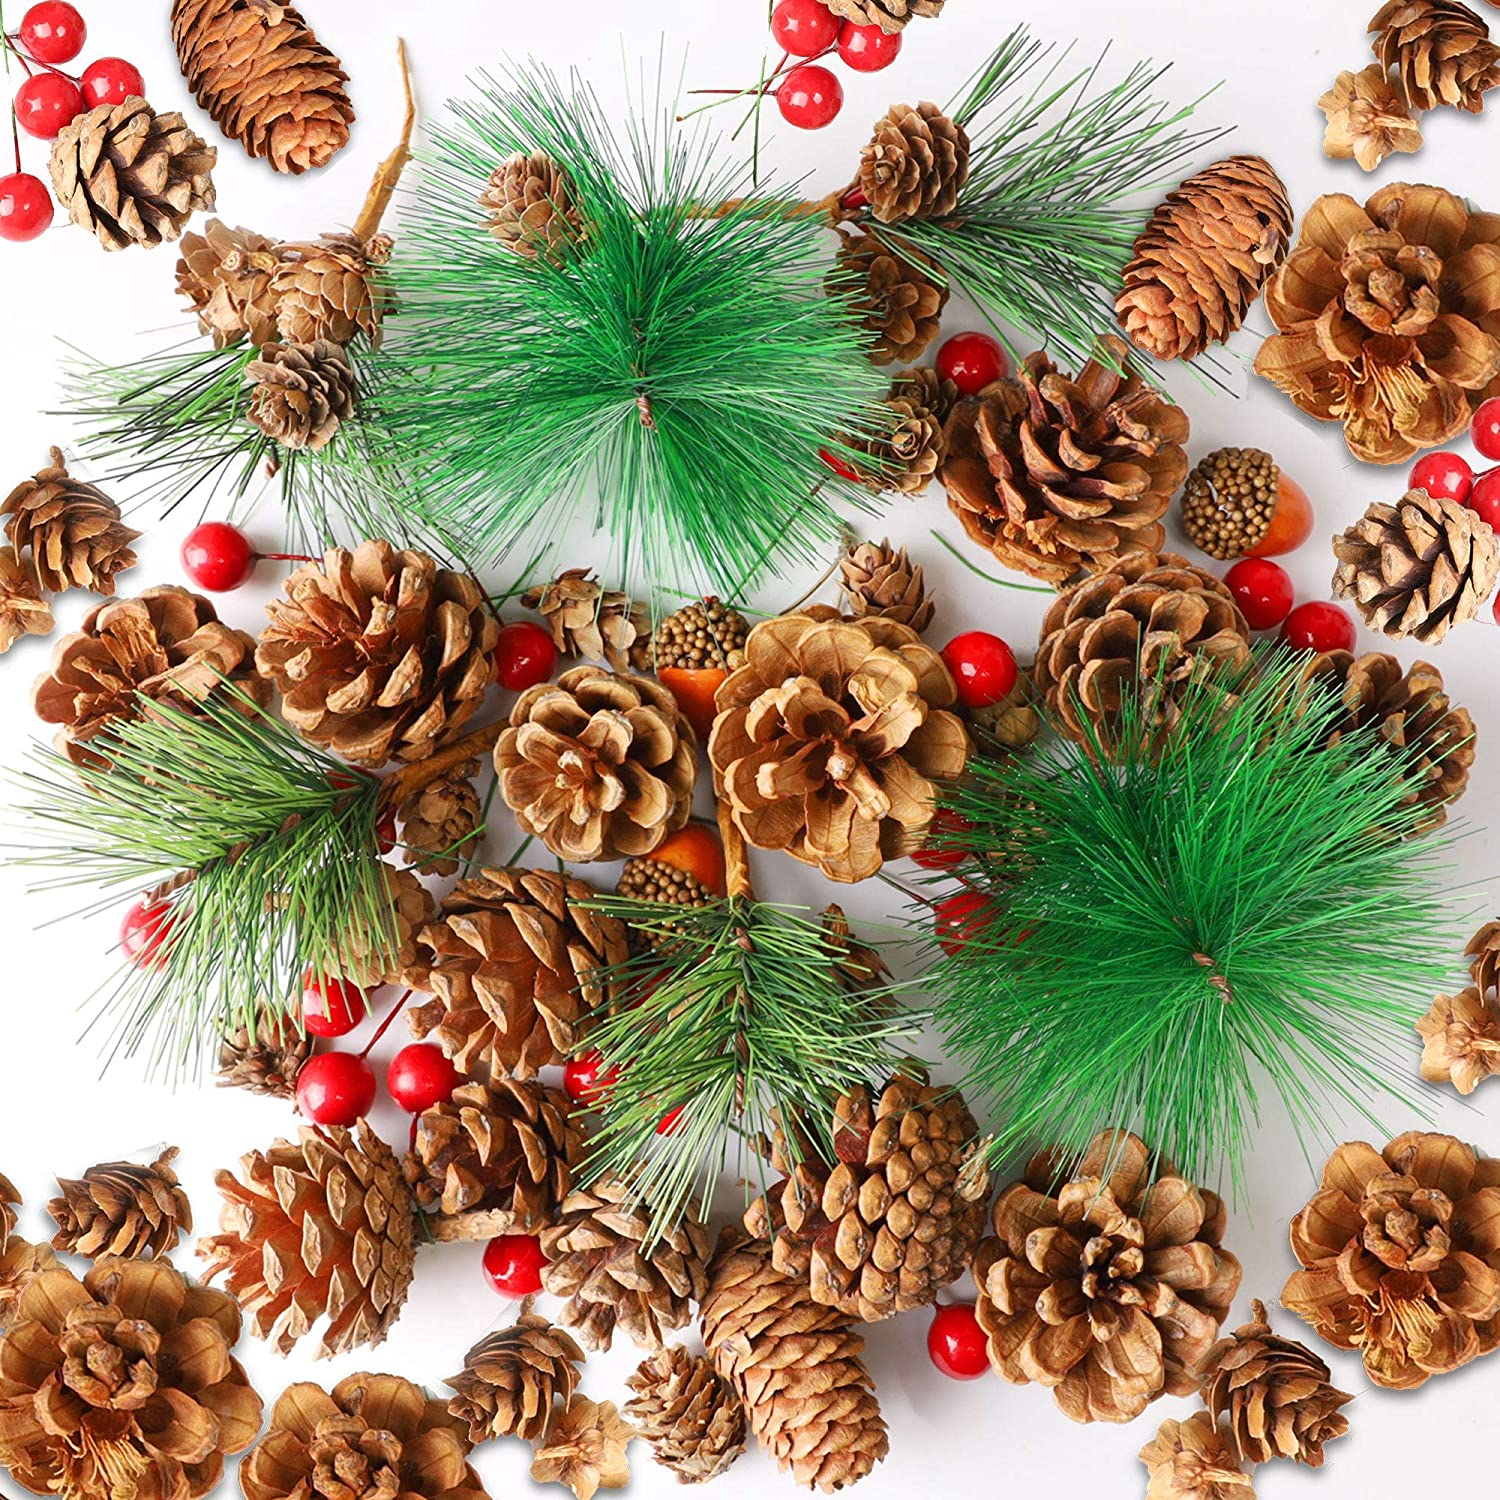 Cllayees 180 PCS Artificial Pine Cones Pine Branch Set, Fake Natural Pinecones Acorns Red Berries Christmas Decor Ornaments for Home Winter Decorations